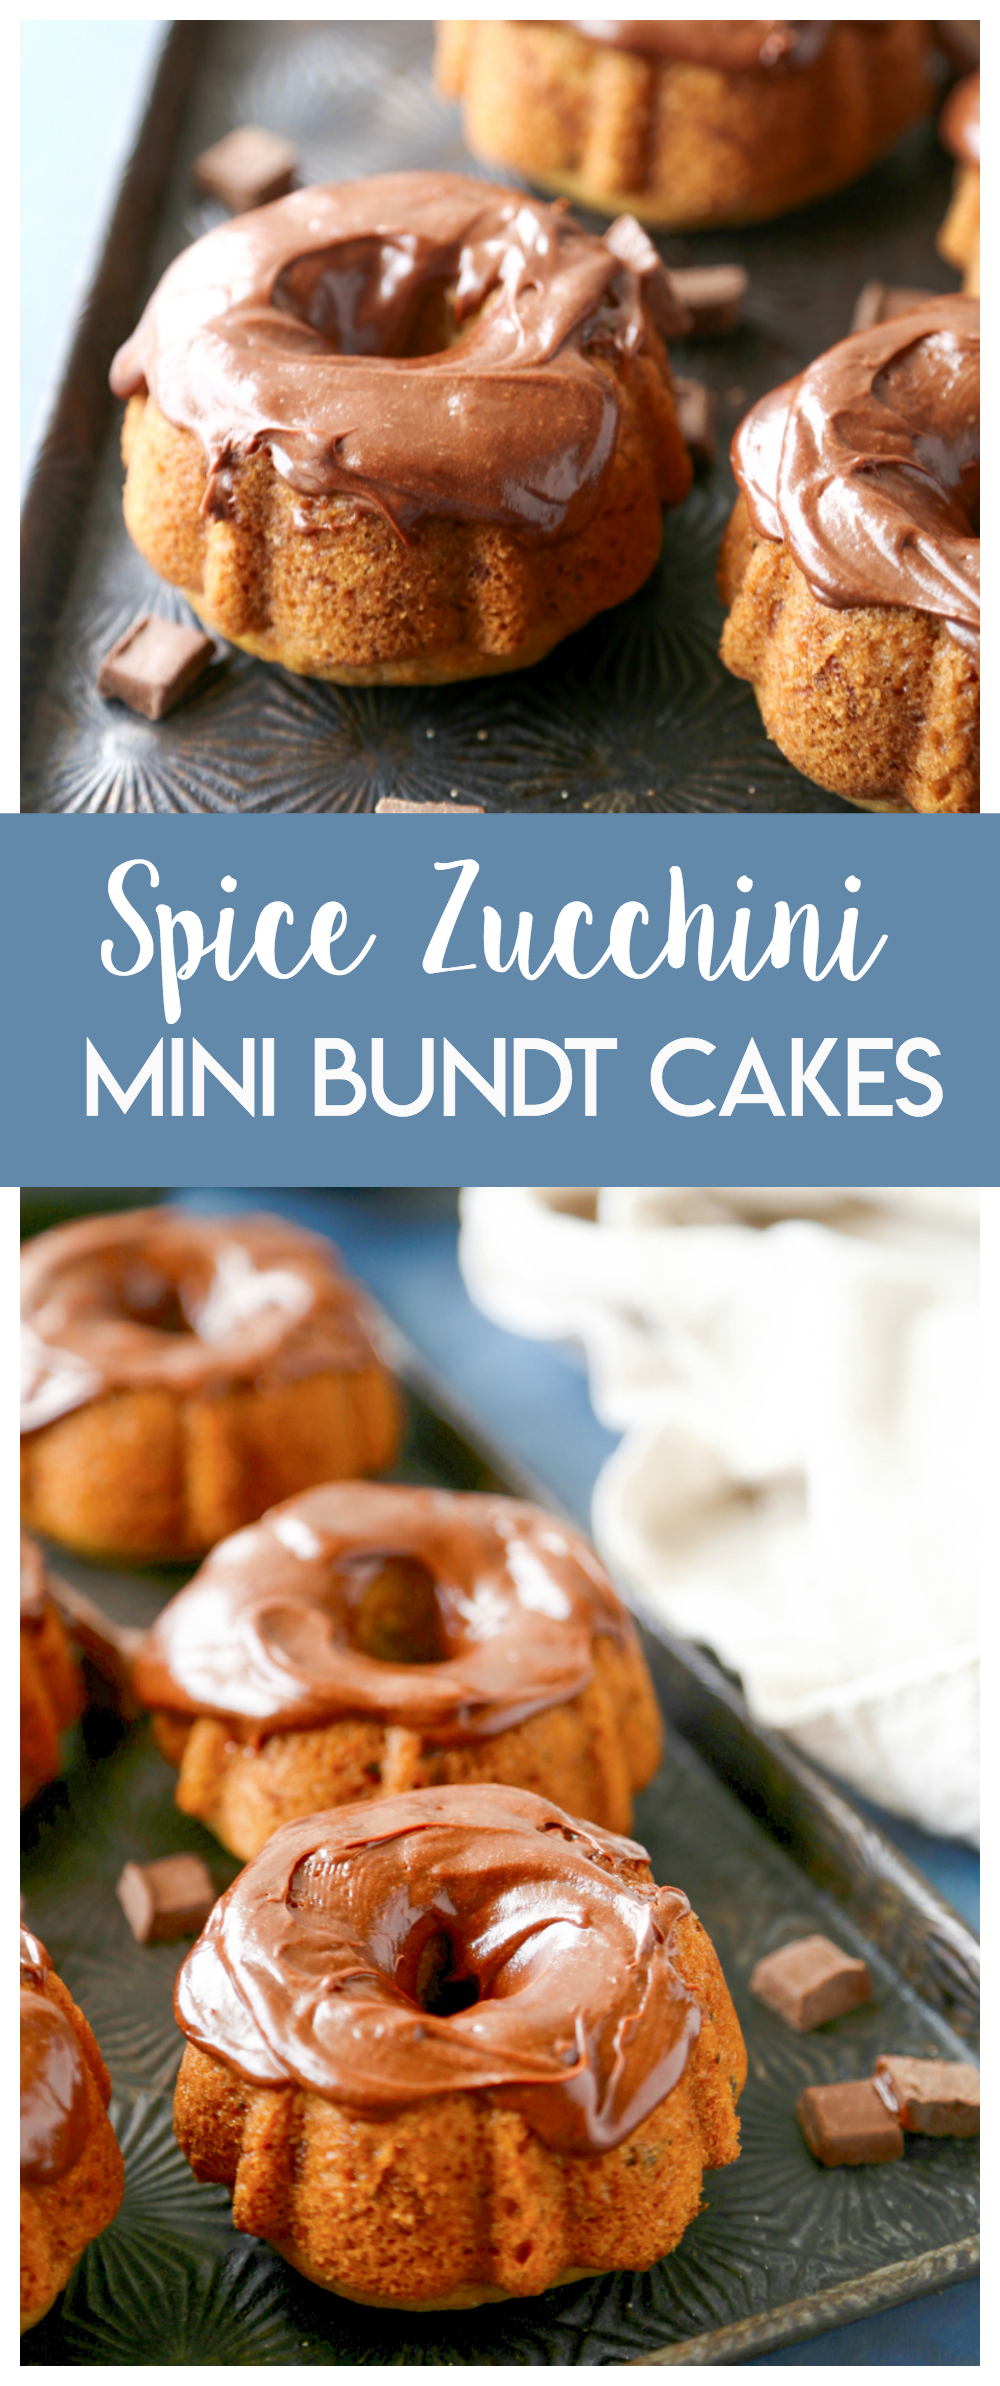 These Mini Spice Zucchini Bundt Cakes are a delicious way to celebrate the fall season!  Top with a delicious chocolate frosting and these little cakes can't be beat!